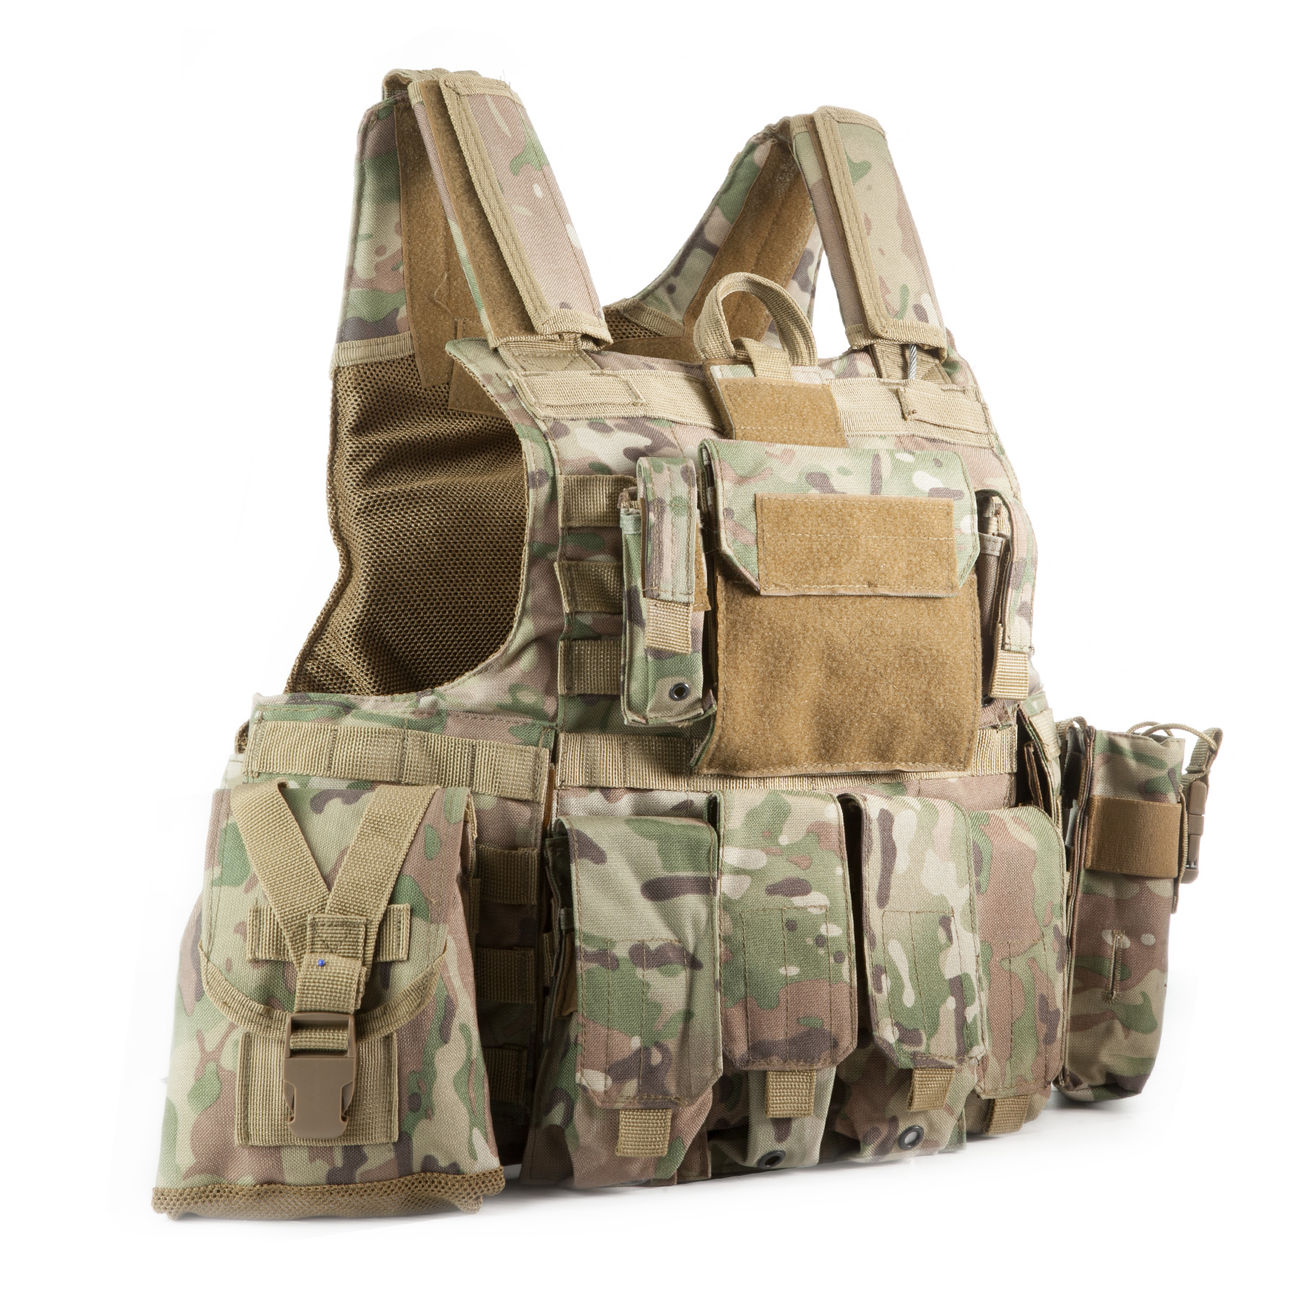 101 INC. Raptor Tactical Vest DTC Multi 1